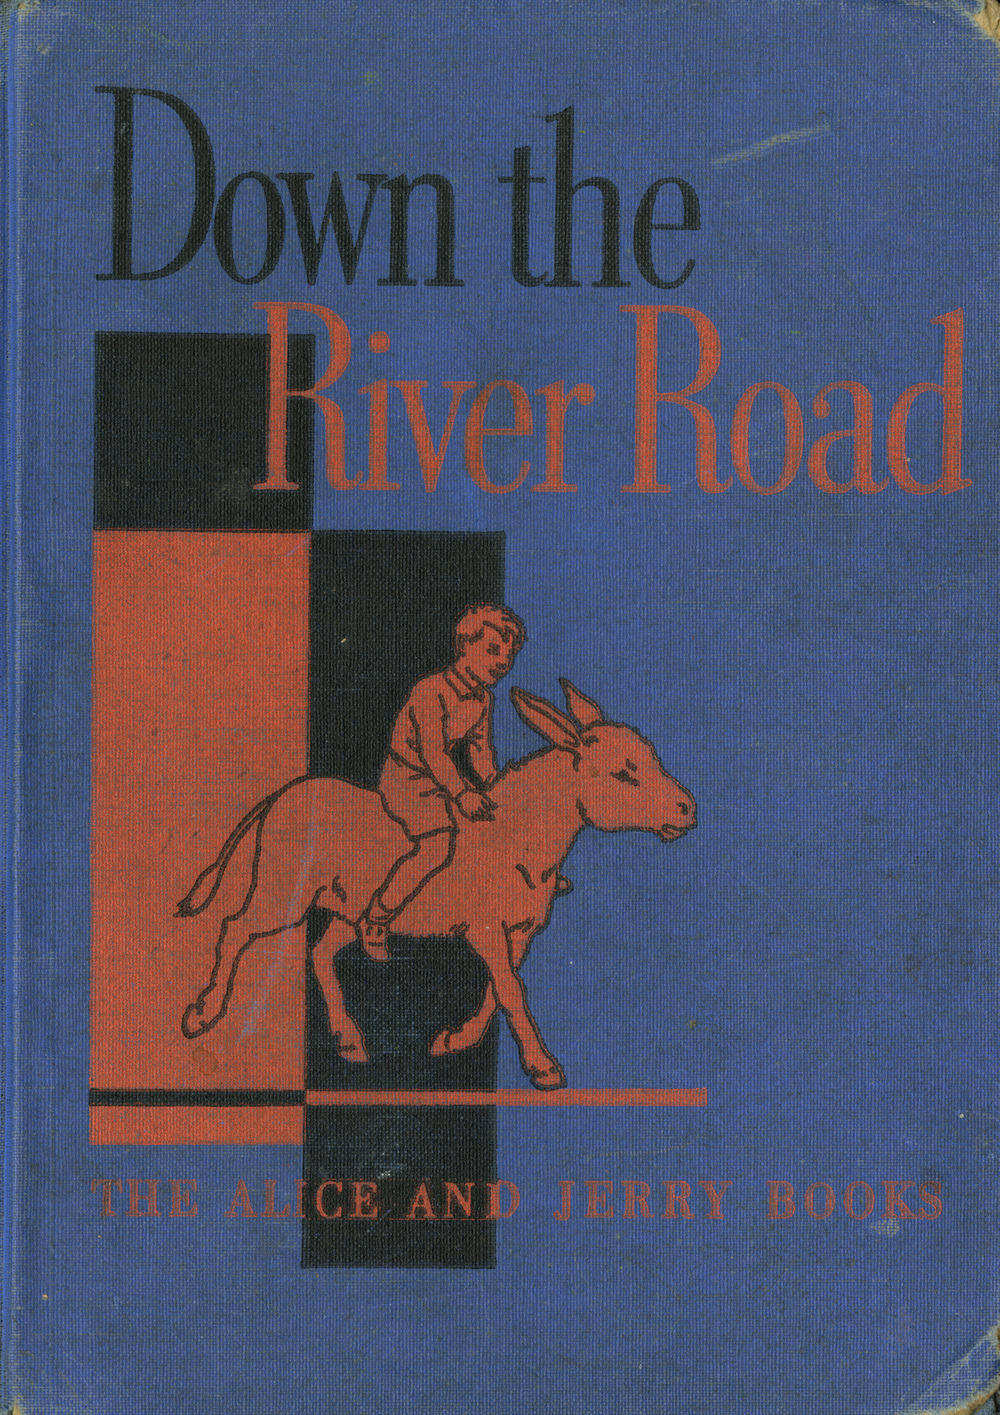 Down the River Road book cover. Written by Mabel O' Donnell. Published by Row, Peterson and Co, 1938.